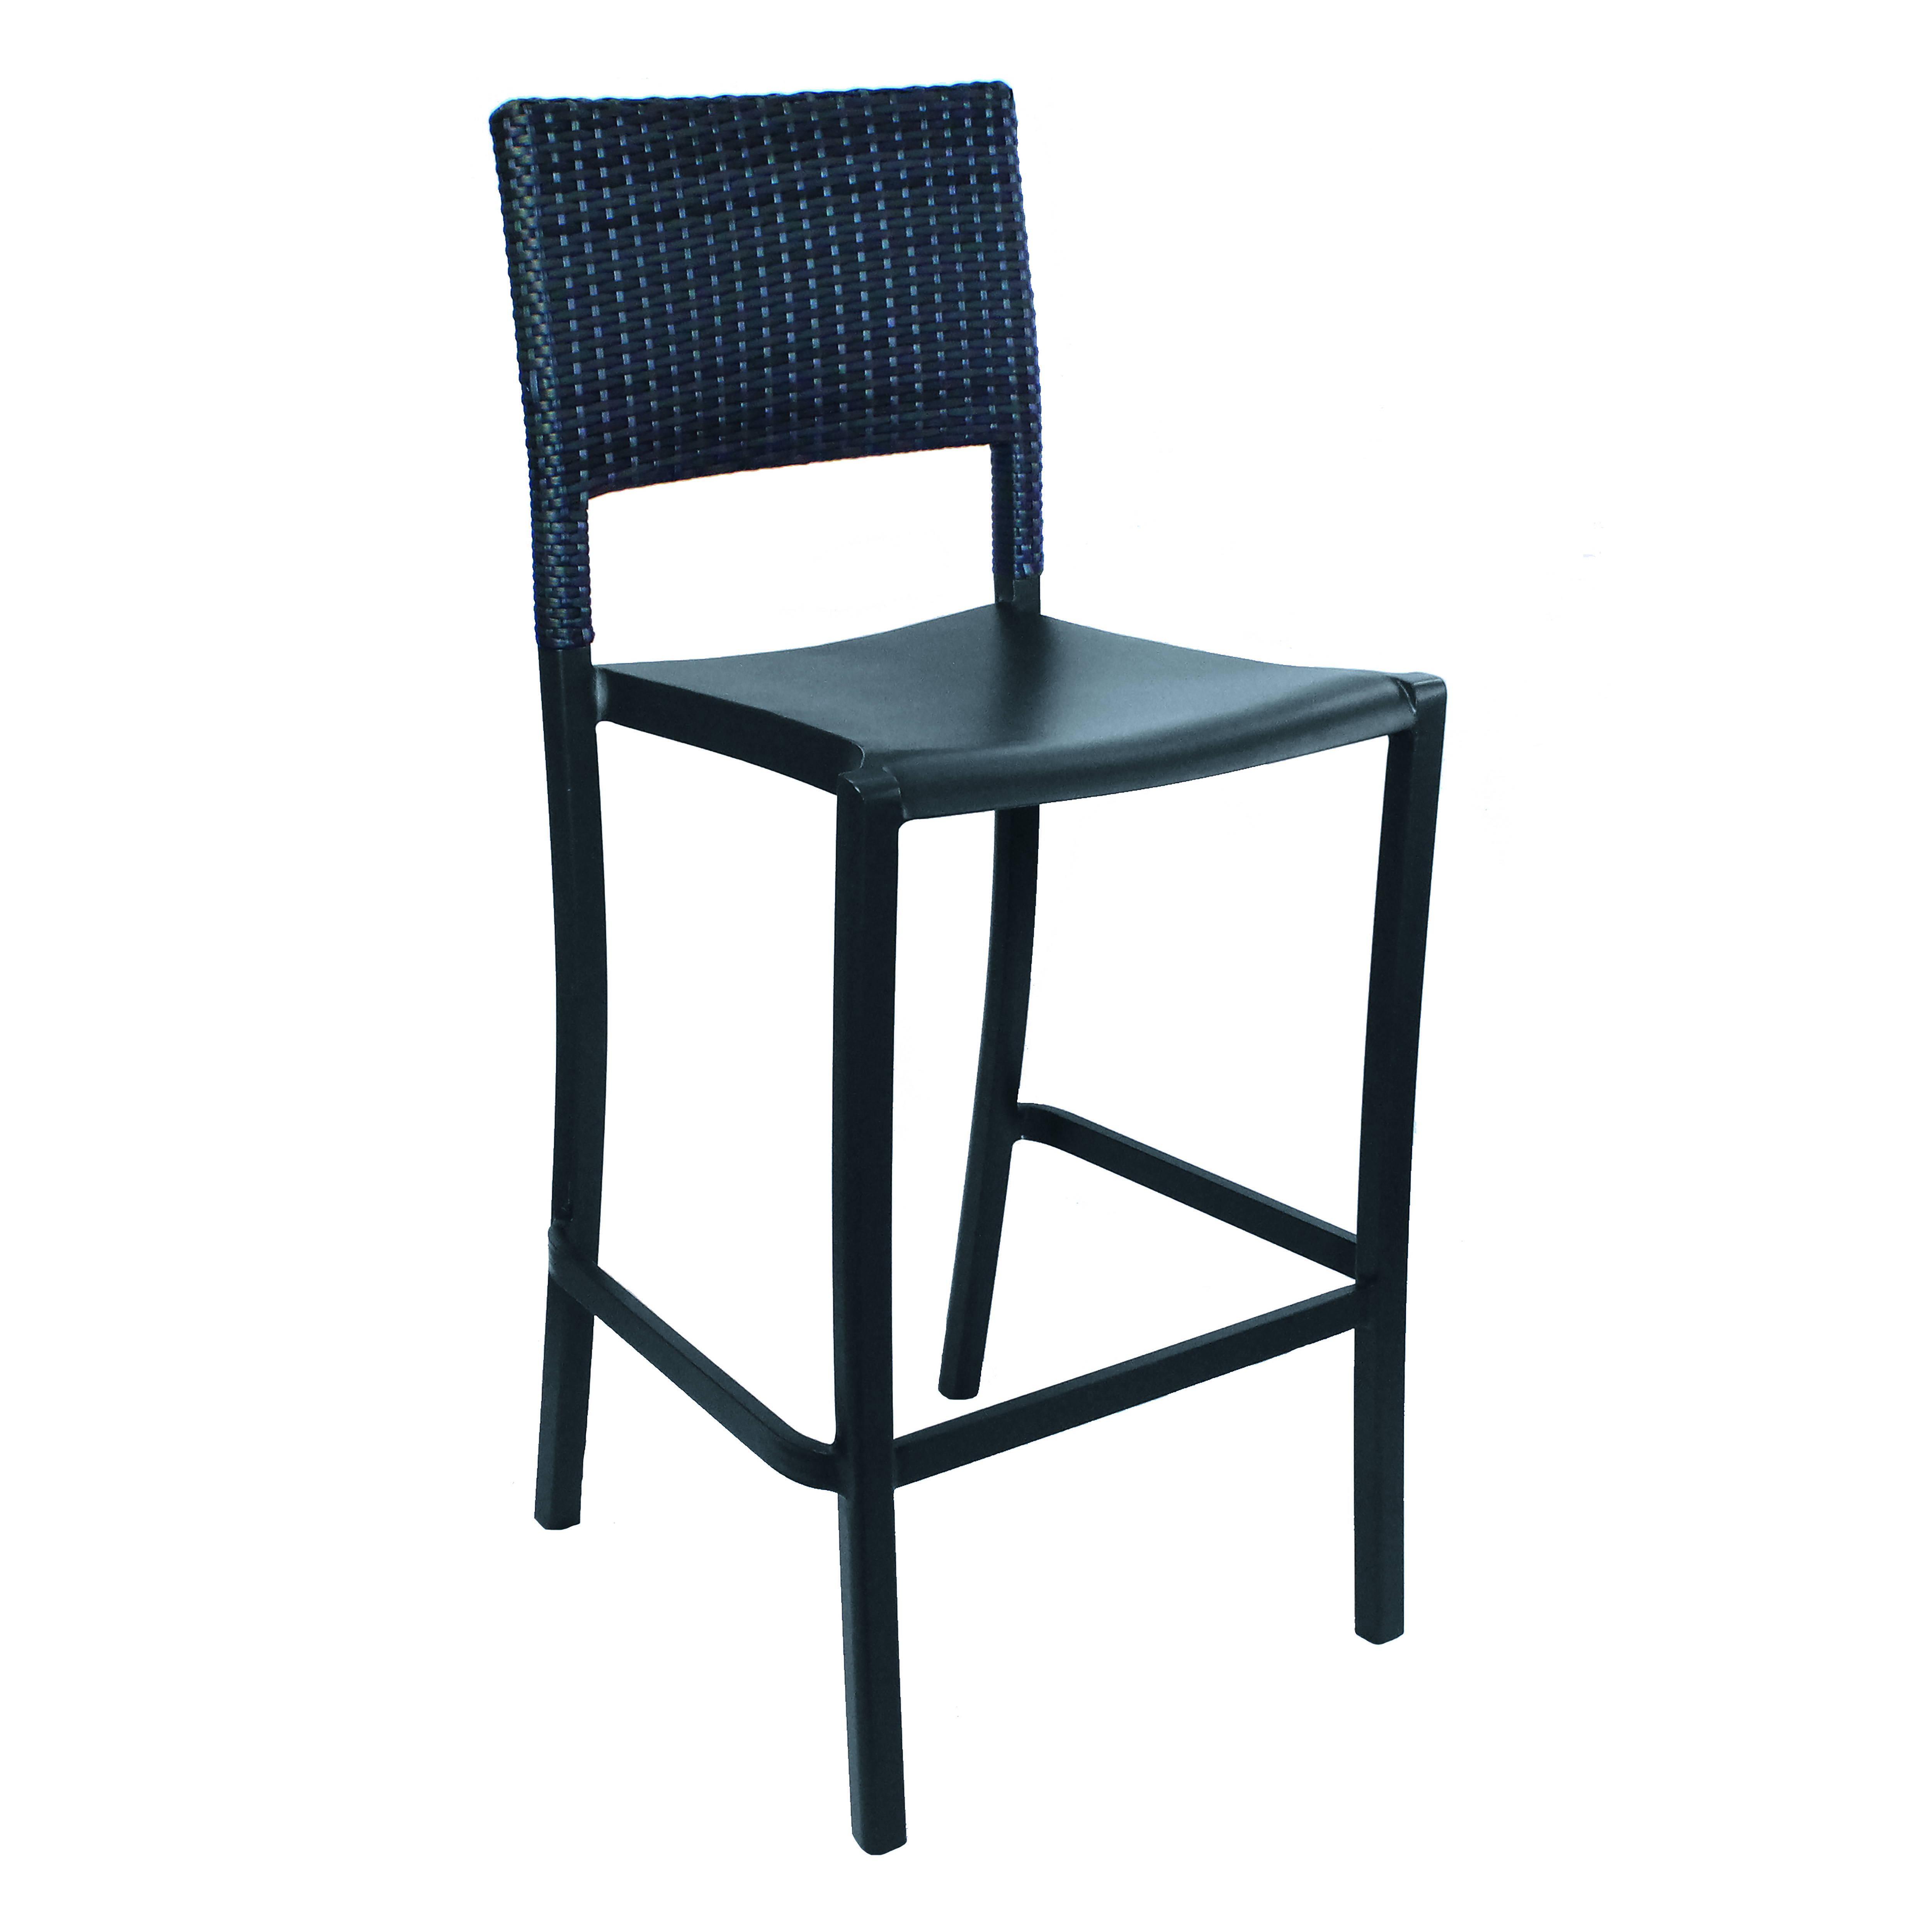 Grosfillex US987002 bar stool, stacking, outdoor